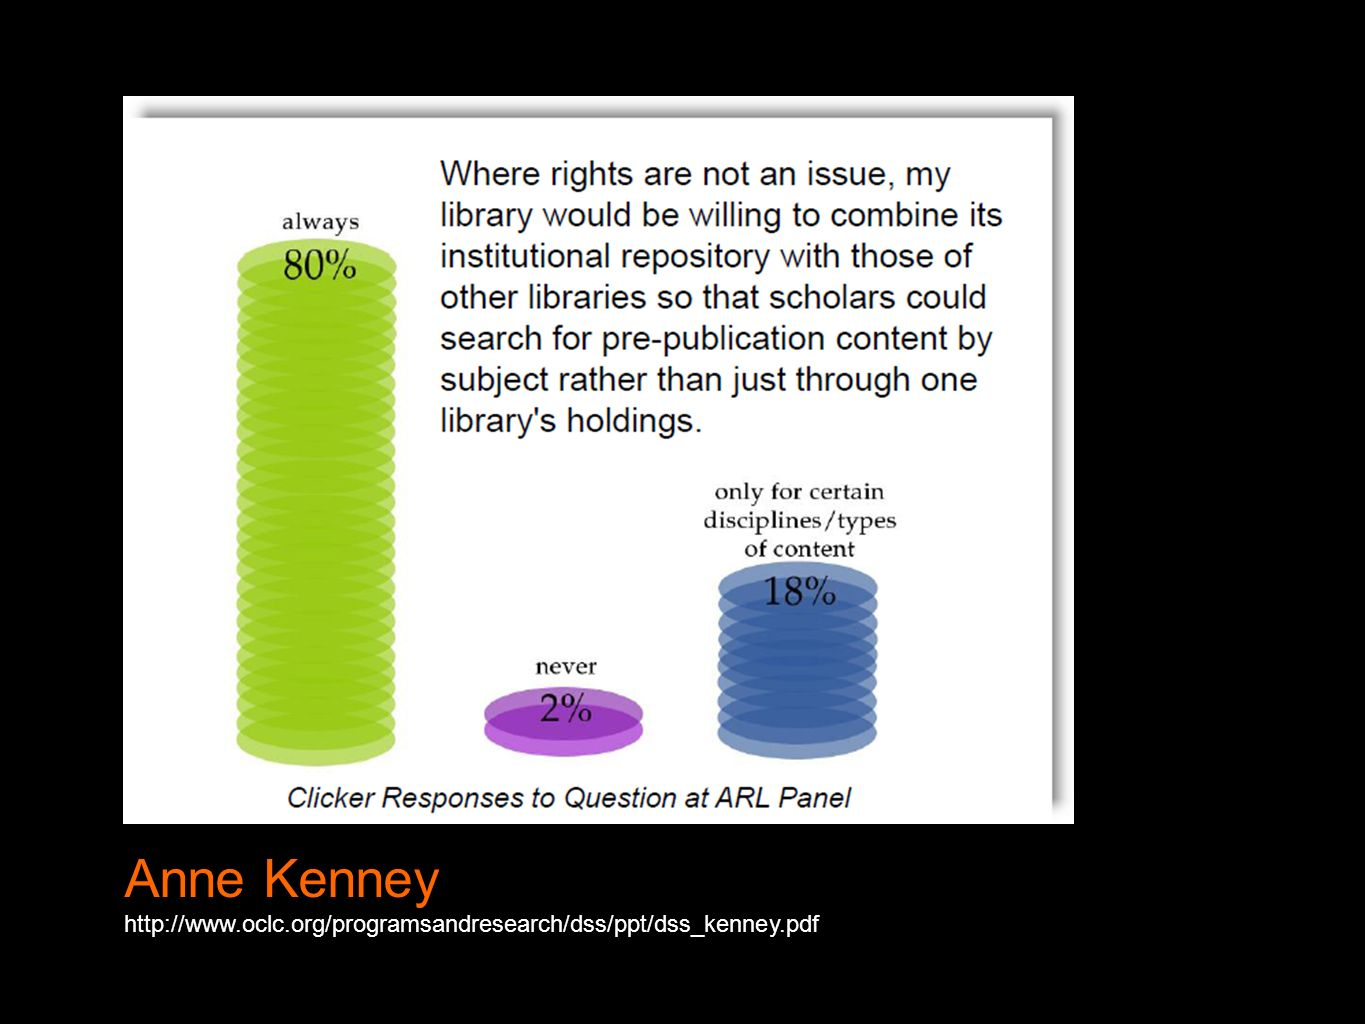 Anne Kenney http://www.oclc.org/programsandresearch/dss/ppt/dss_kenney.pdf